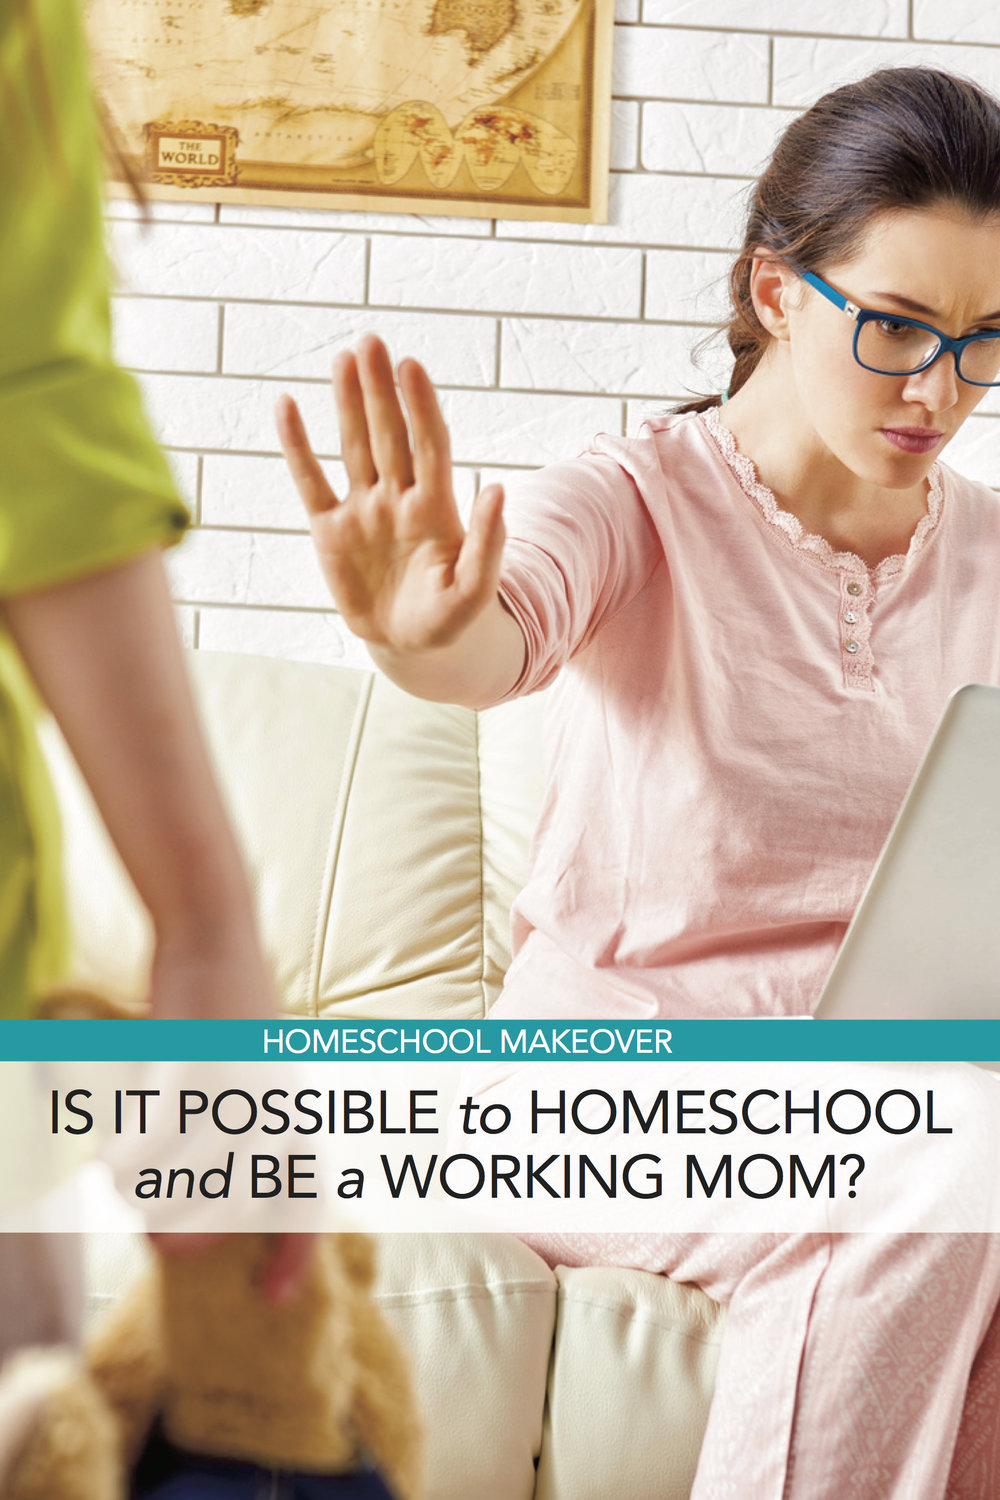 Homeschool Makeover: Is It Possible to Homeschool and Be a Working Mom?